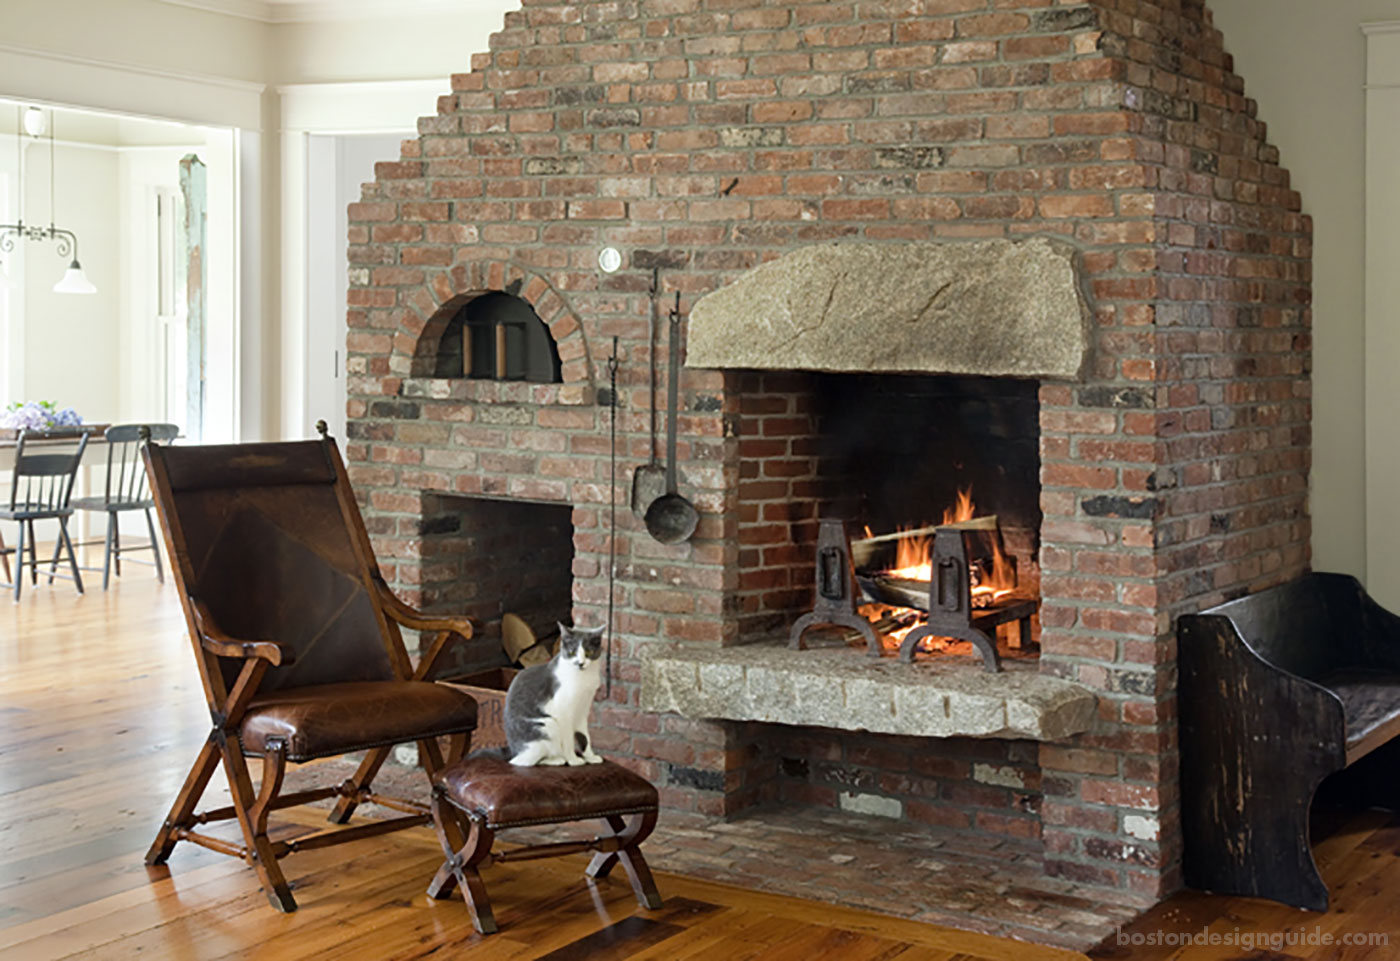 Wonderful Fireplaces In The Dining Room For Cozy And Warm: January Warm-Up: 6 Cozy Fireplaces